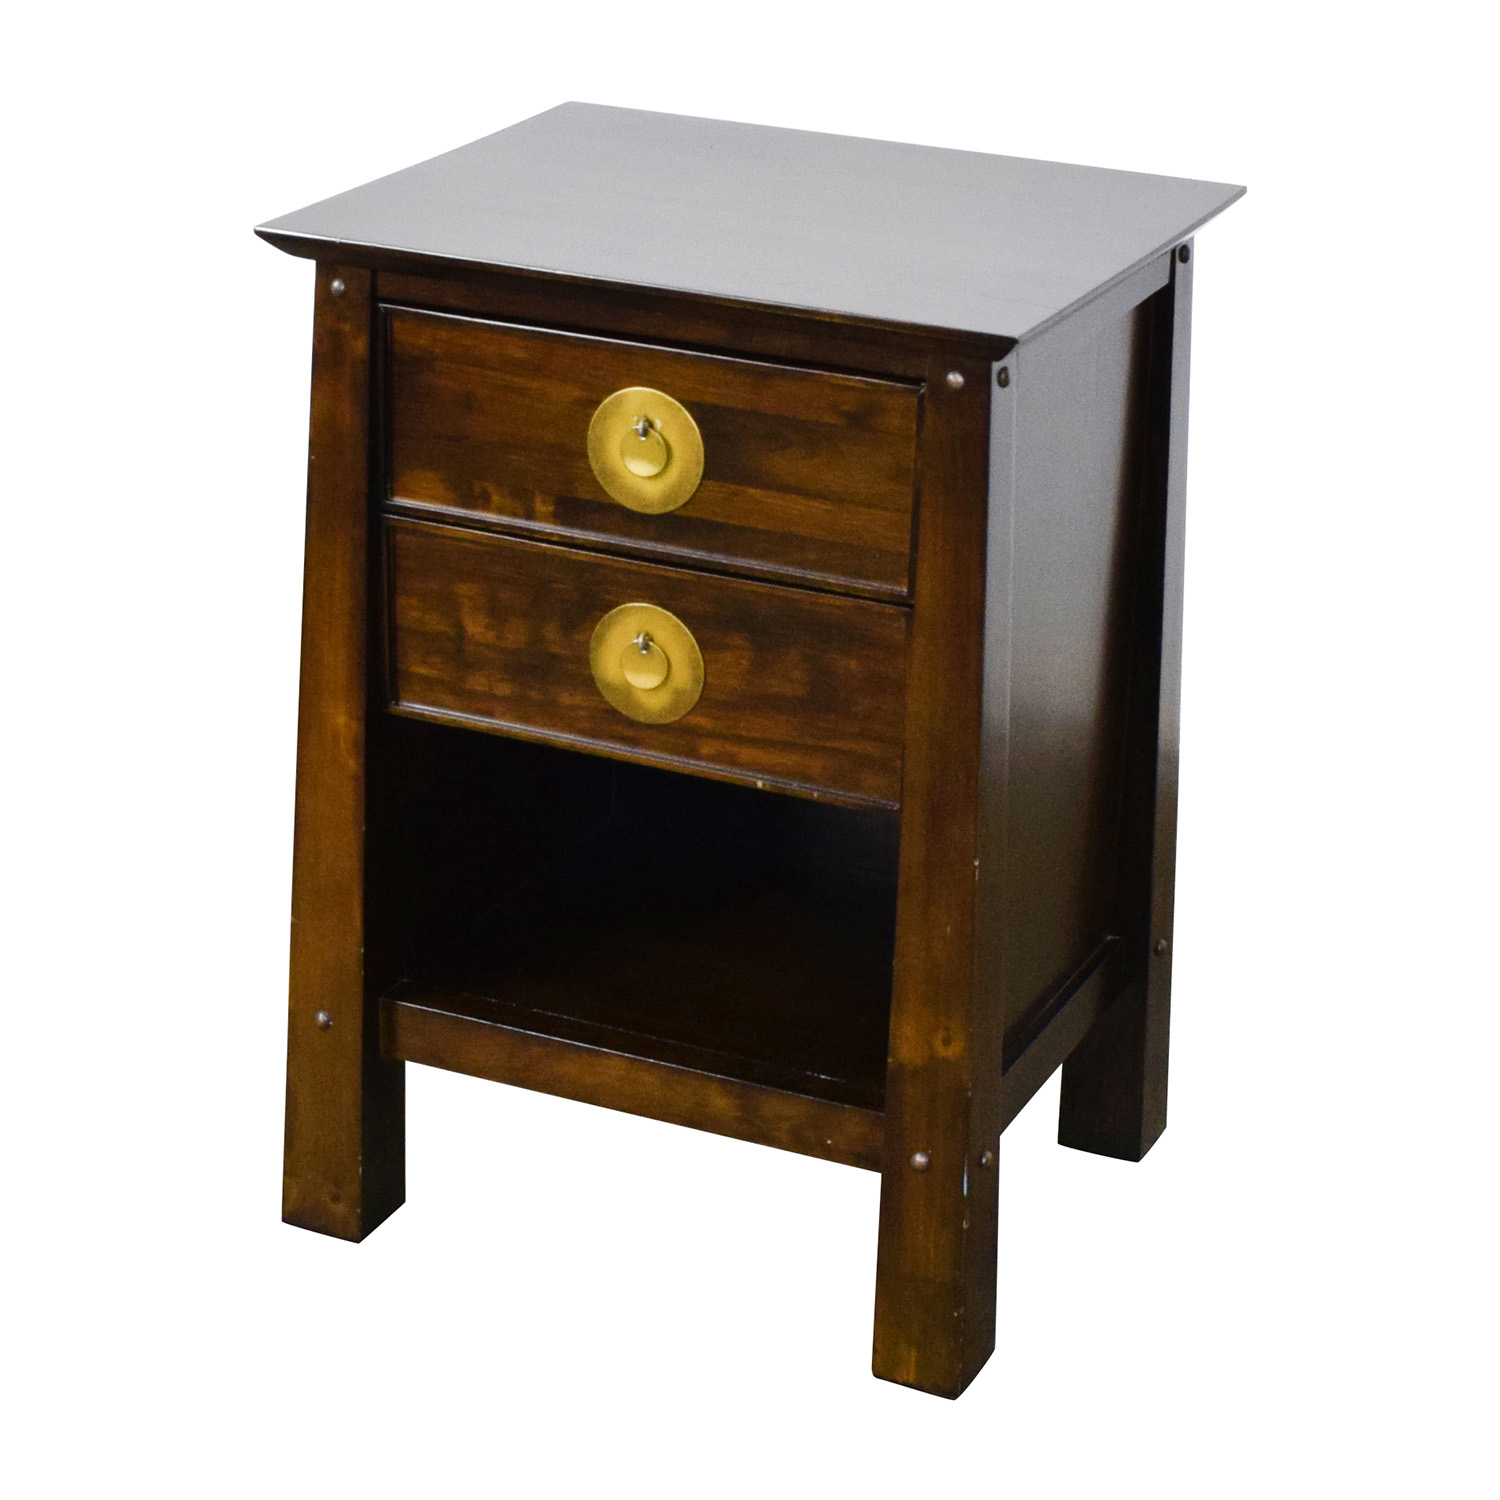 pier 1 imports dining chairs upholstered canada 79% off - shanghai collection espresso nightstand / tables